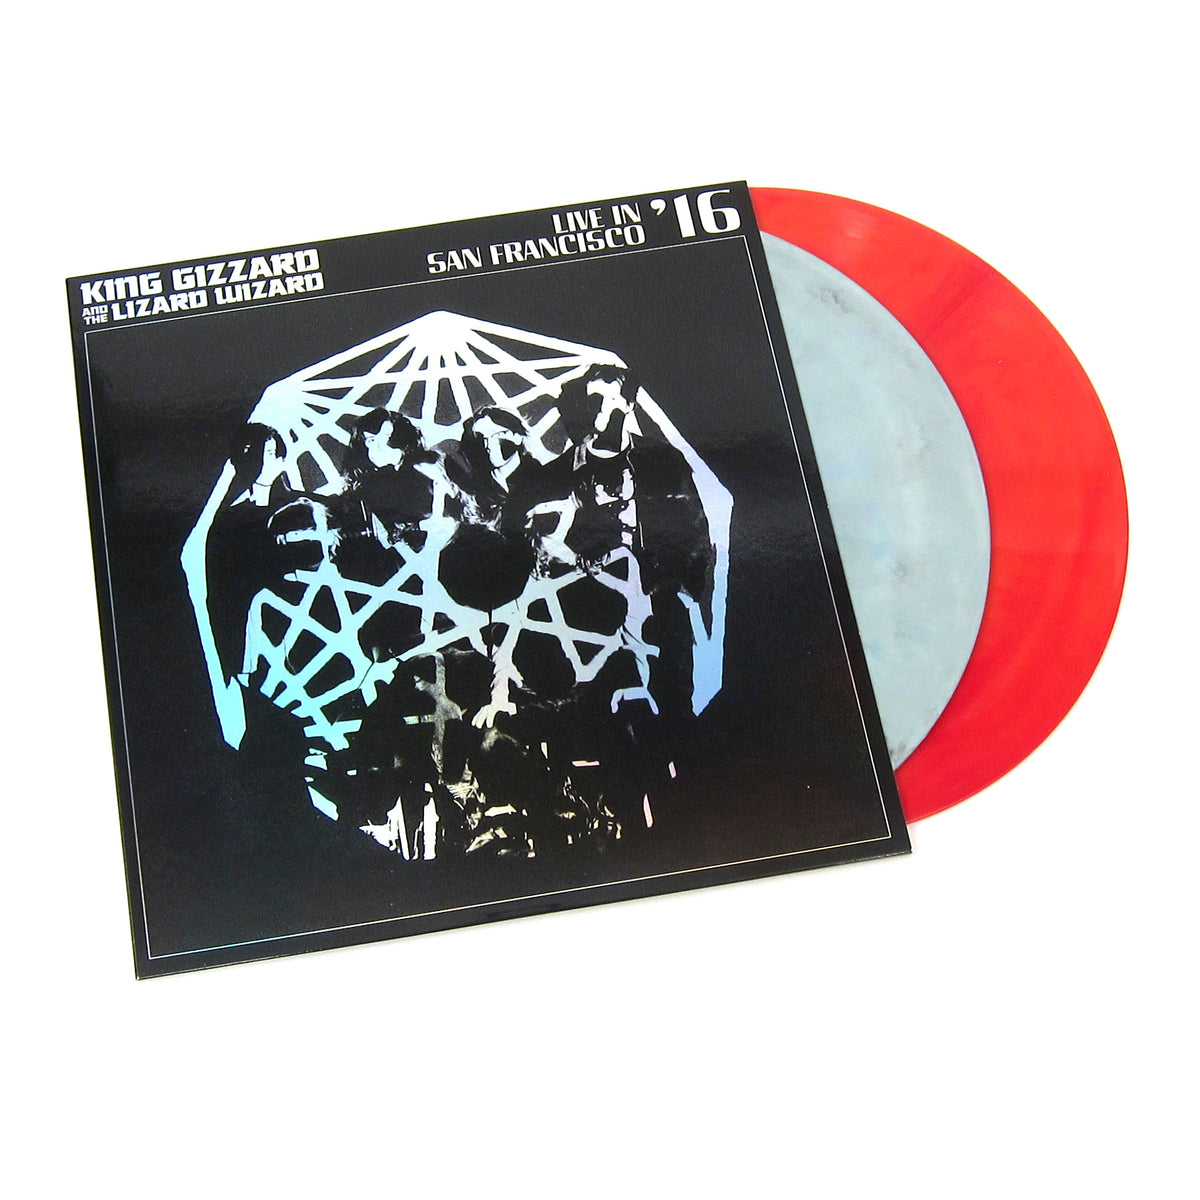 King Gizzard And The Lizard Wizard: Live In San Francisco '16 - Deluxe Edition (Colored Vinyl)